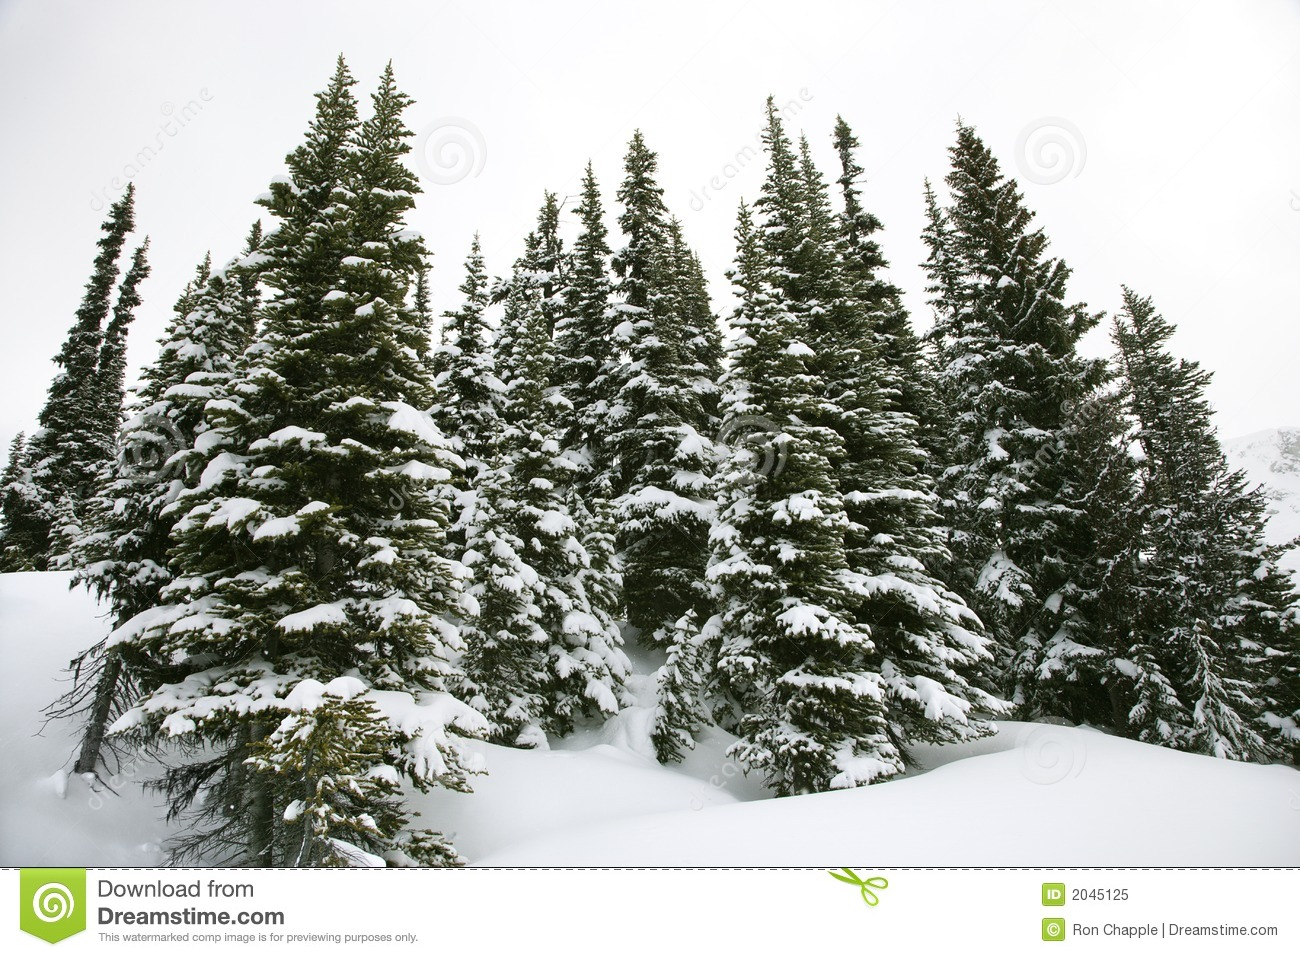 Snow covered pine trees stock image image of horizontal - Images of pine trees in snow ...